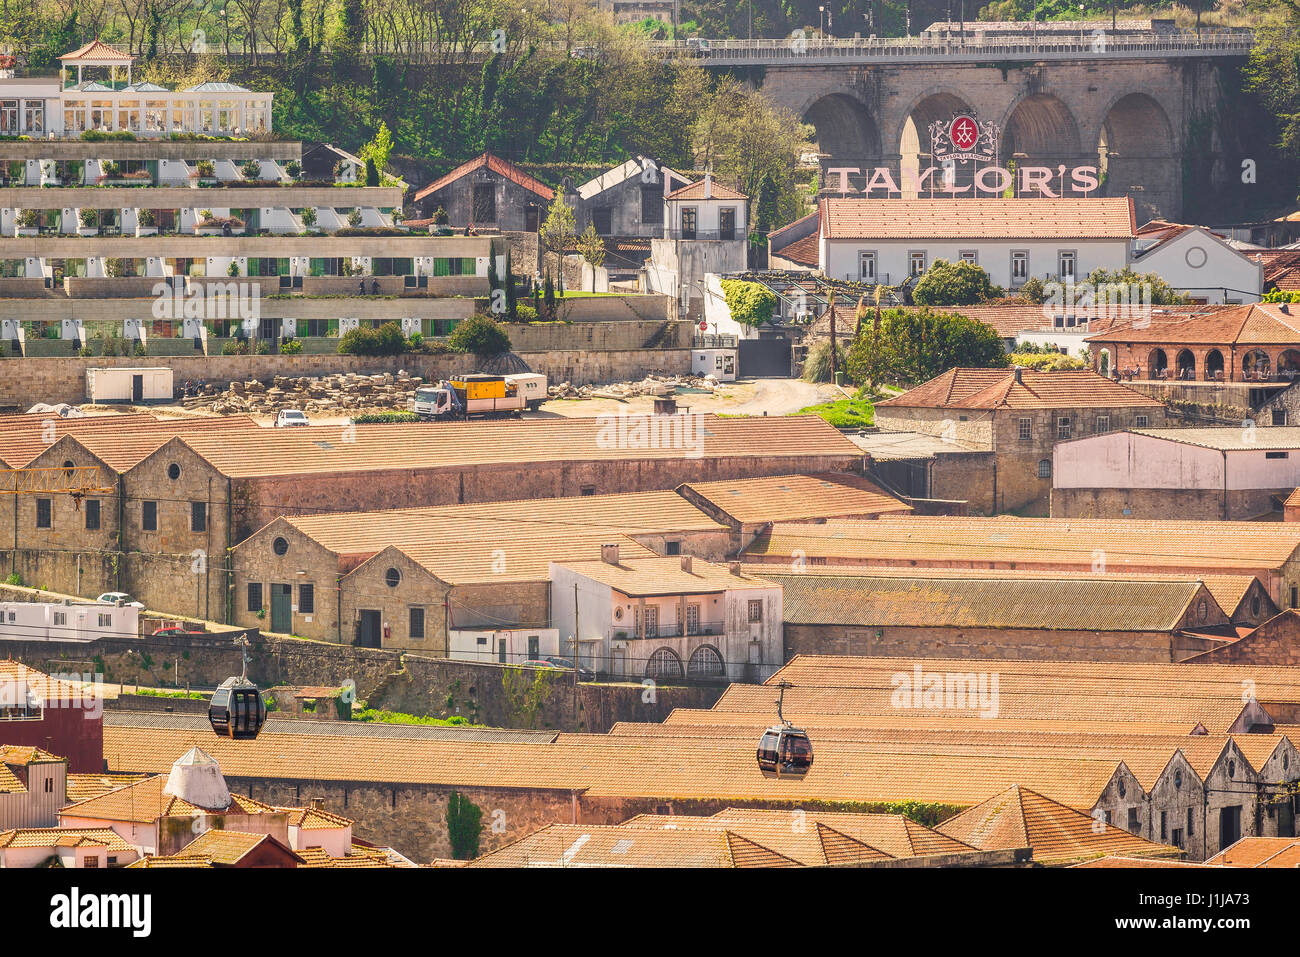 Porto Portugal Gaia, cable cars carrying tourists pass over the rooftops of port wine lodges sited in the waterfront - Stock Image